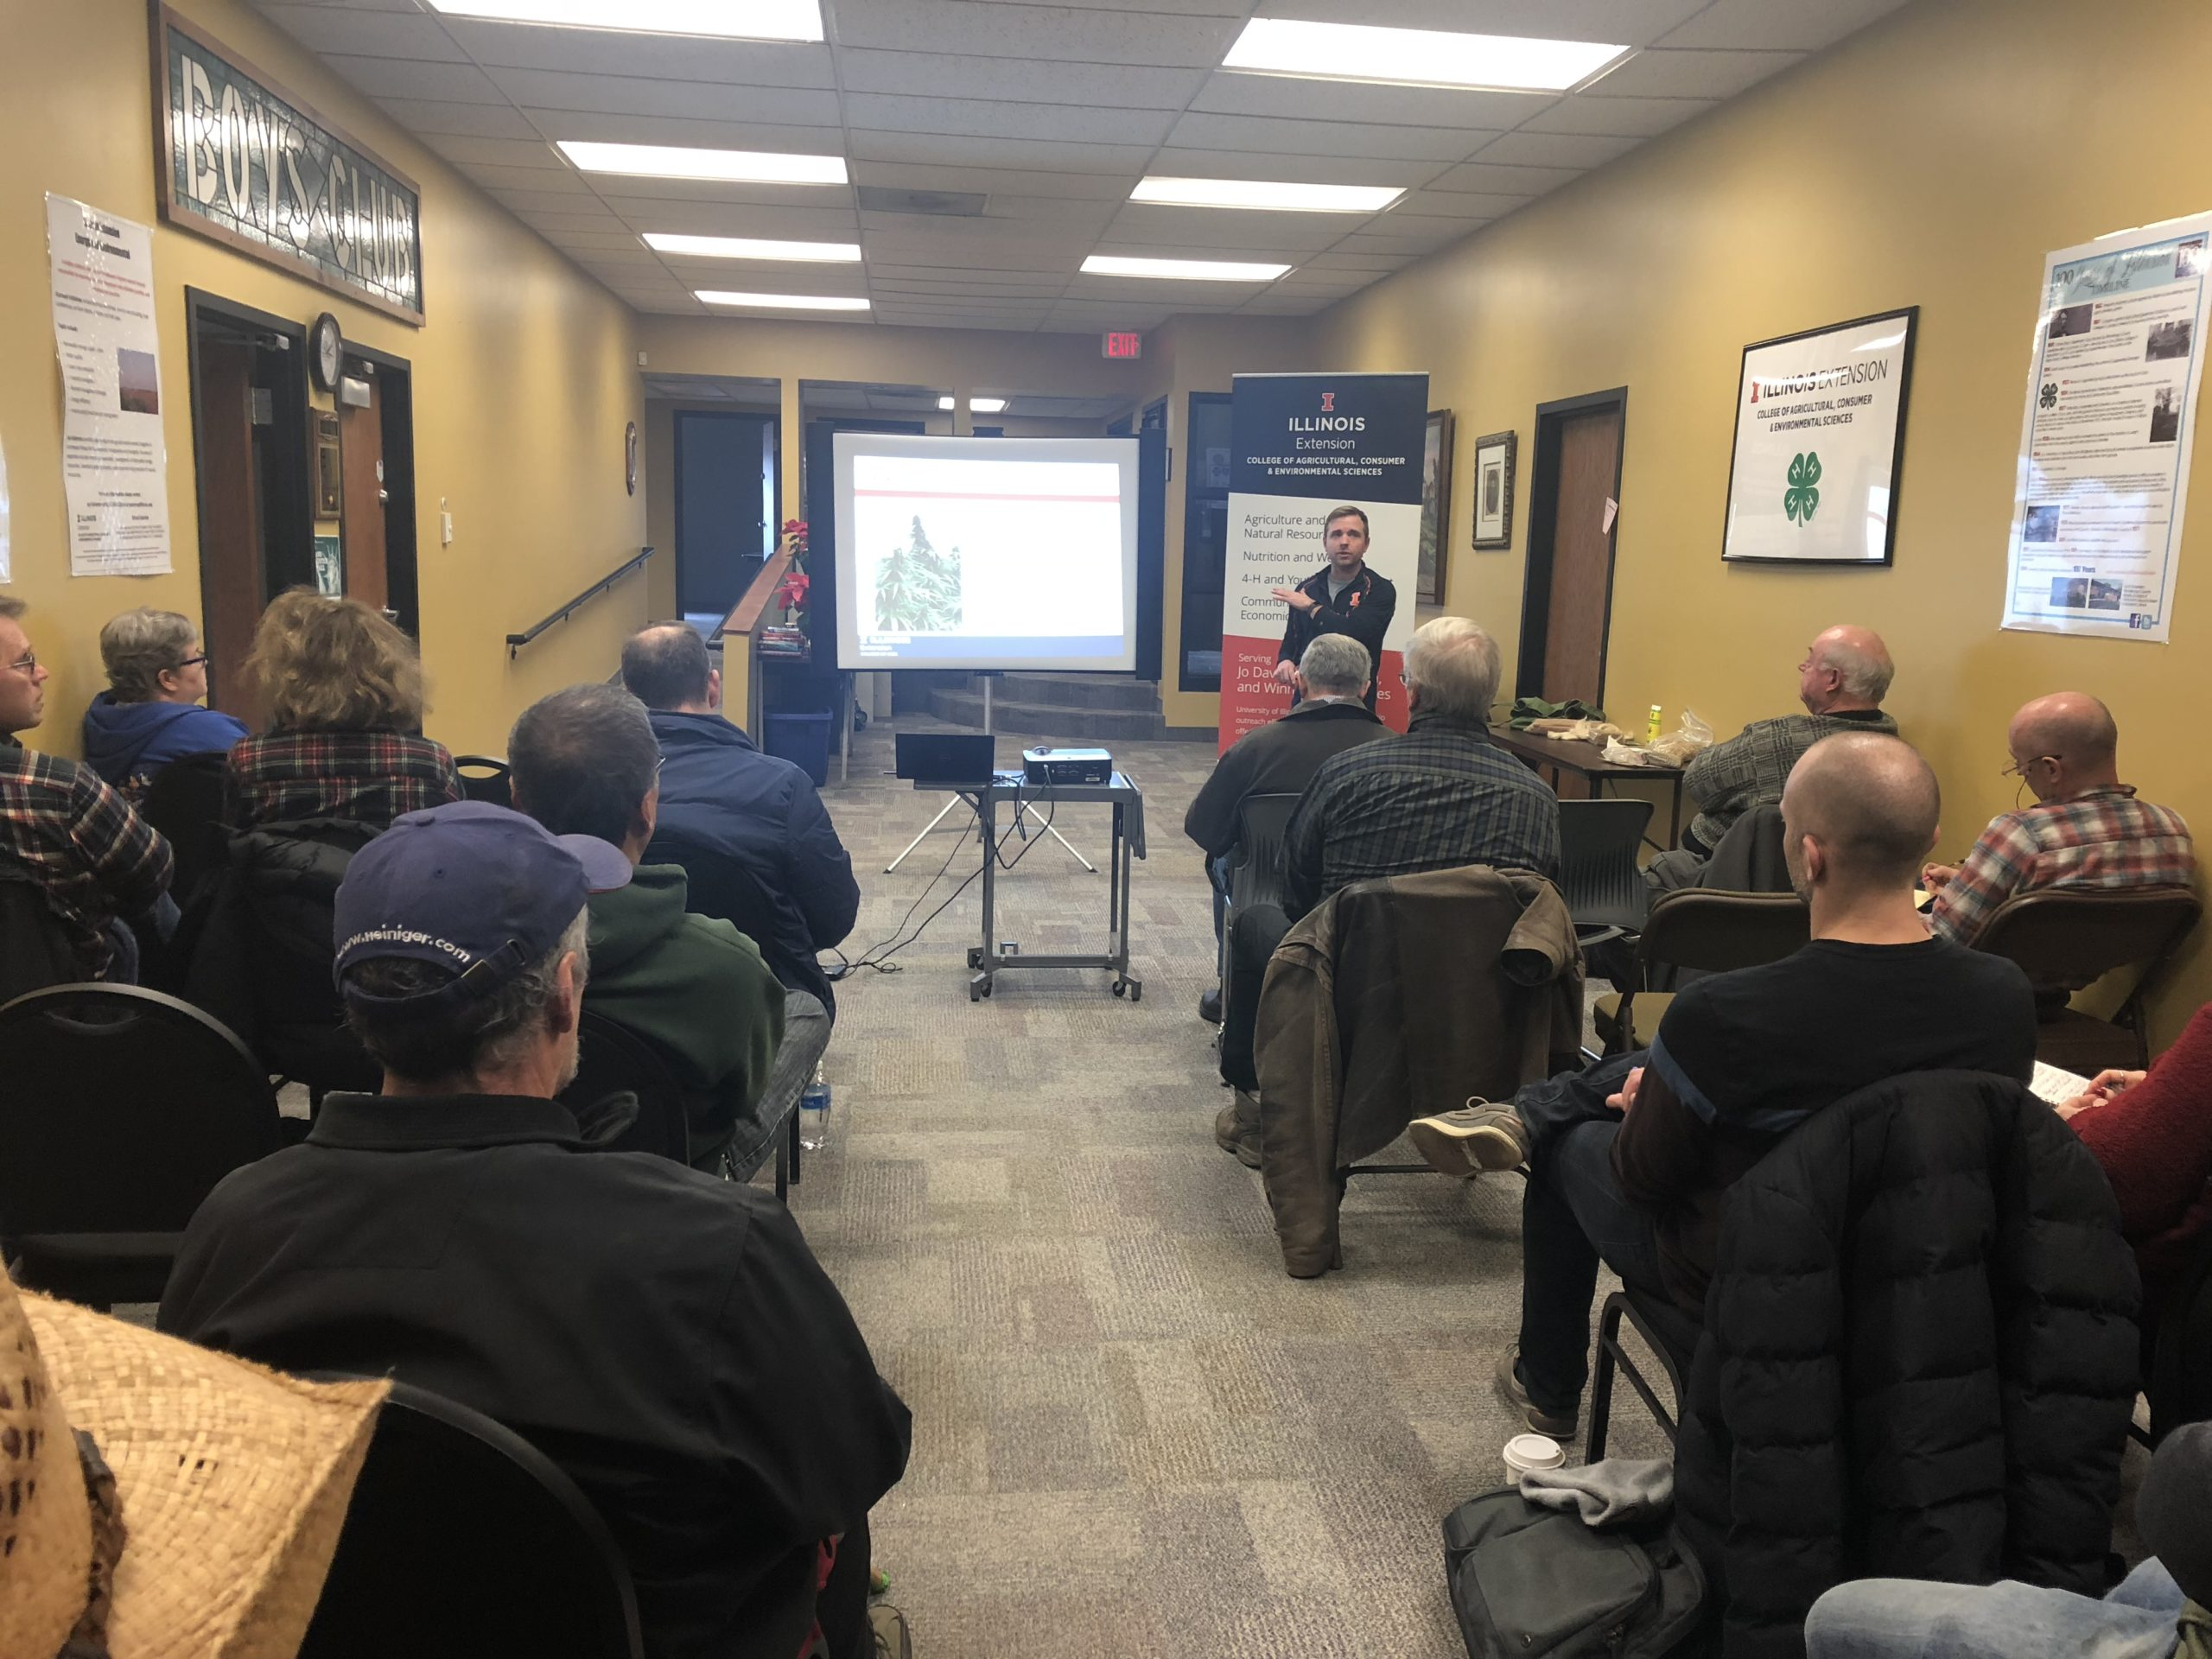 Interested farmers learn about industrial hemp at the University of Illinois Extension Office in Winnebago County - WIFR